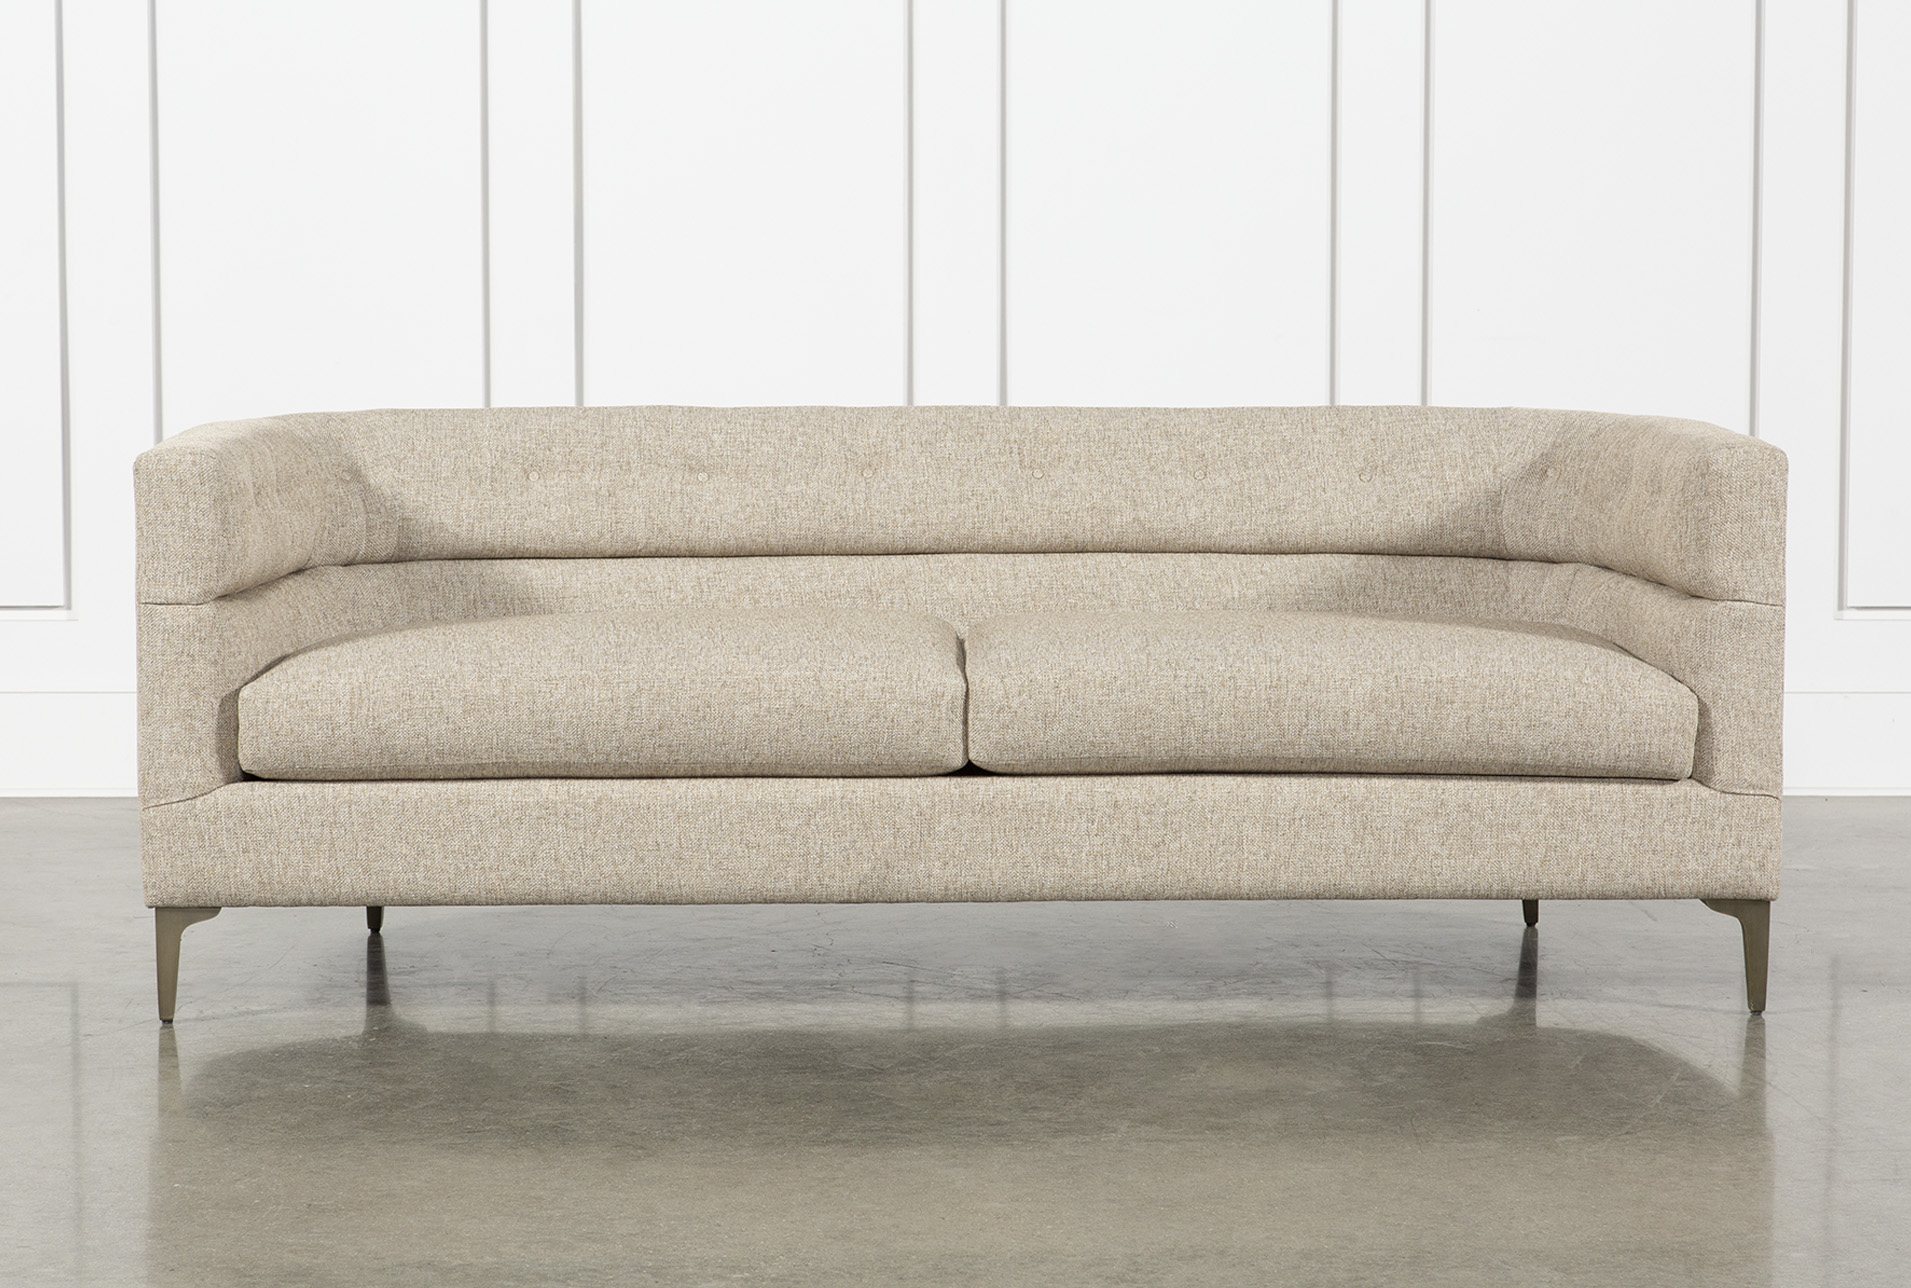 Featured Image of Matteo Arm Sofa Chairs By Nate Berkus And Jeremiah Brent